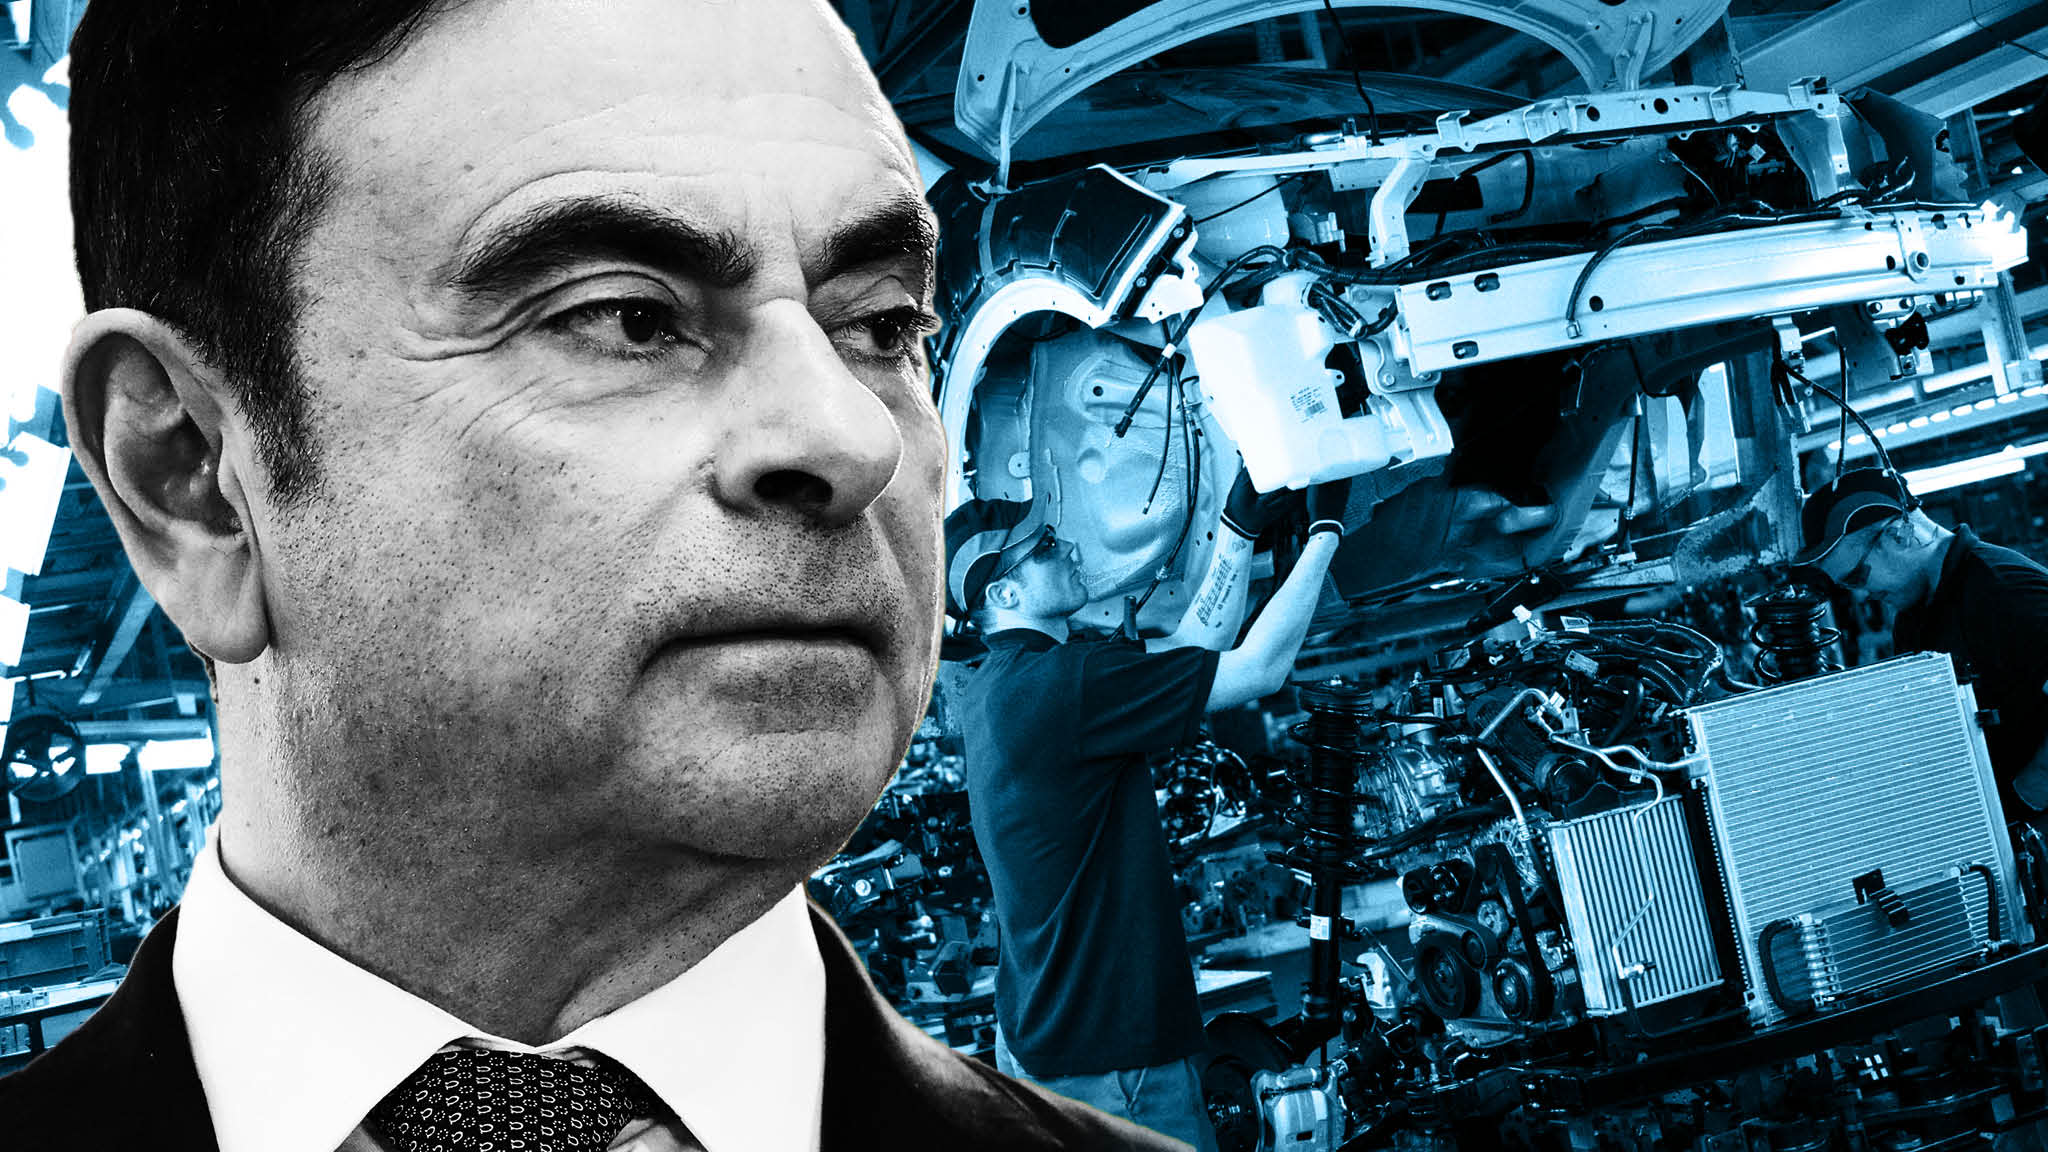 Ghosn arrest sparks fears for global car alliance